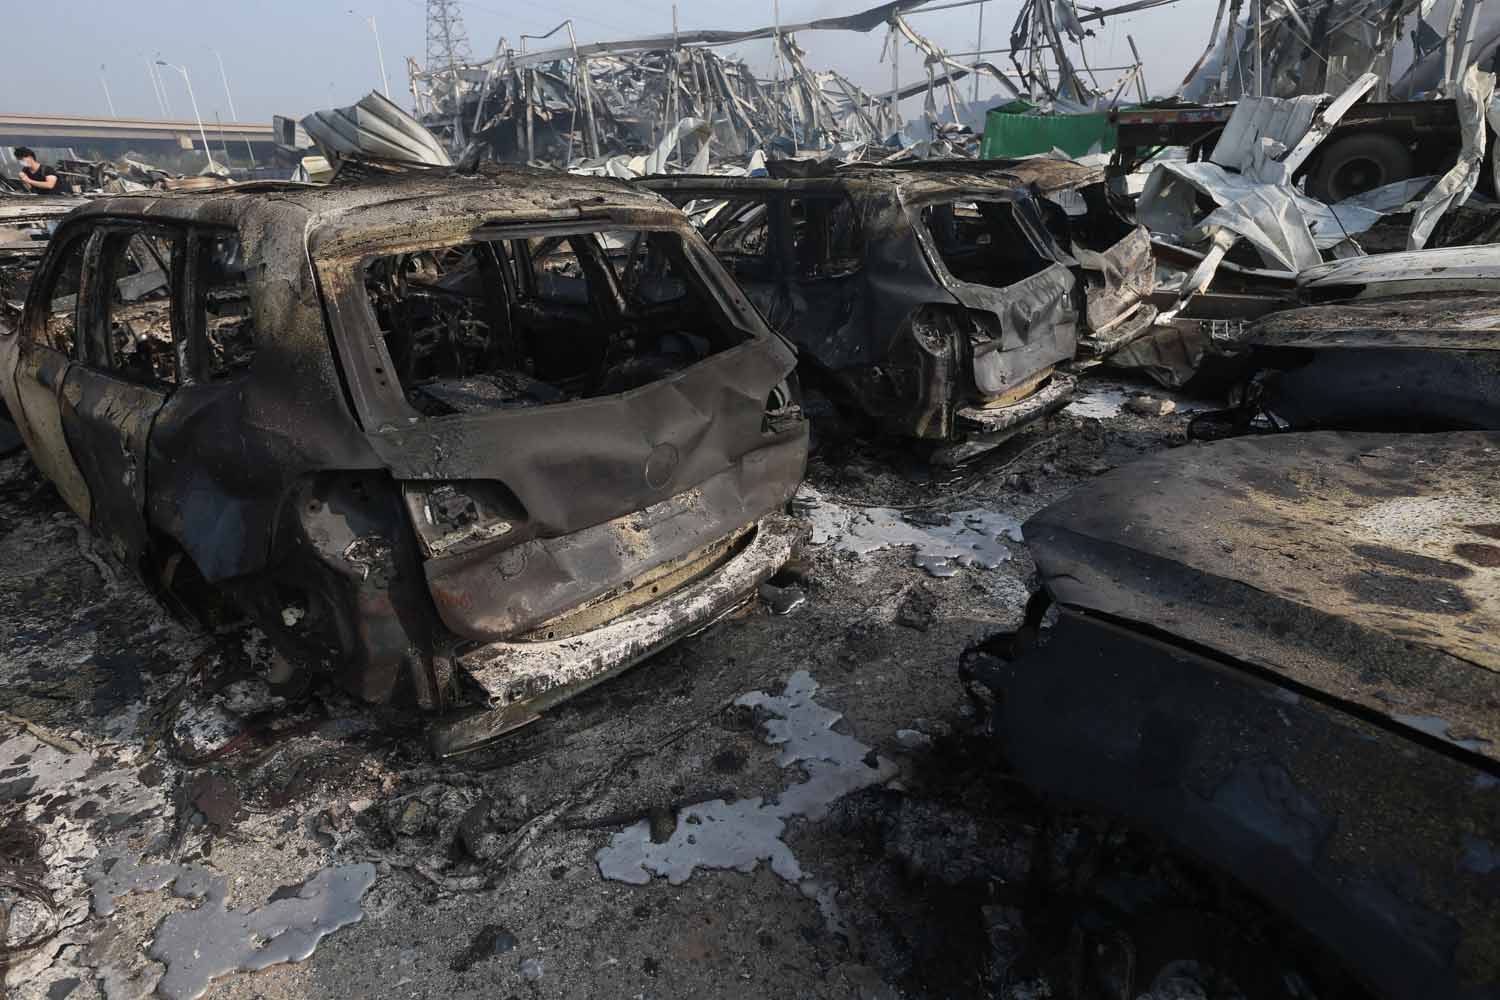 TIANJIN, CHINA - AUGUST 13: (CHINA OUT) Burnt cars are seen in the debris following the explosions of a warehouse in Binhai New Area on August 13, 2015 in Tianjin, China. At least 17 people dead, 32 are in critical condition and at least another 400 injured during the explosions of a warehouse on late Wednesday in Binhai New Area in Tianjin, according to police authority.  (Photo by ChinaFotoPress/ChinaFotoPress via Getty Images)